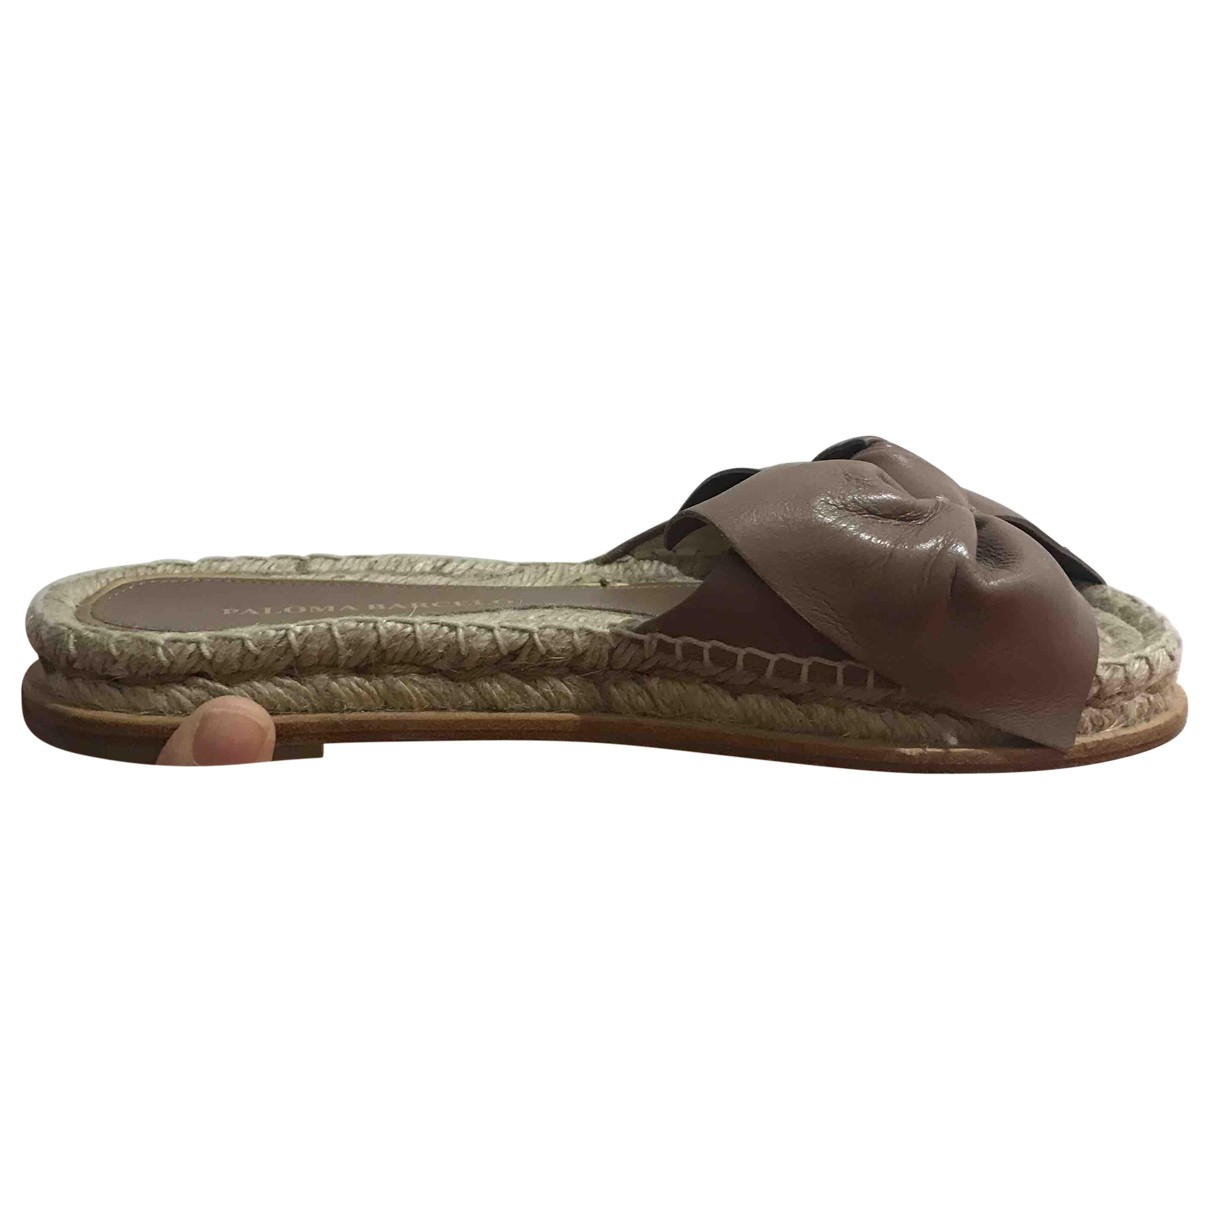 Paloma Barcelo \N Brown Leather Flats for Women 38 EU